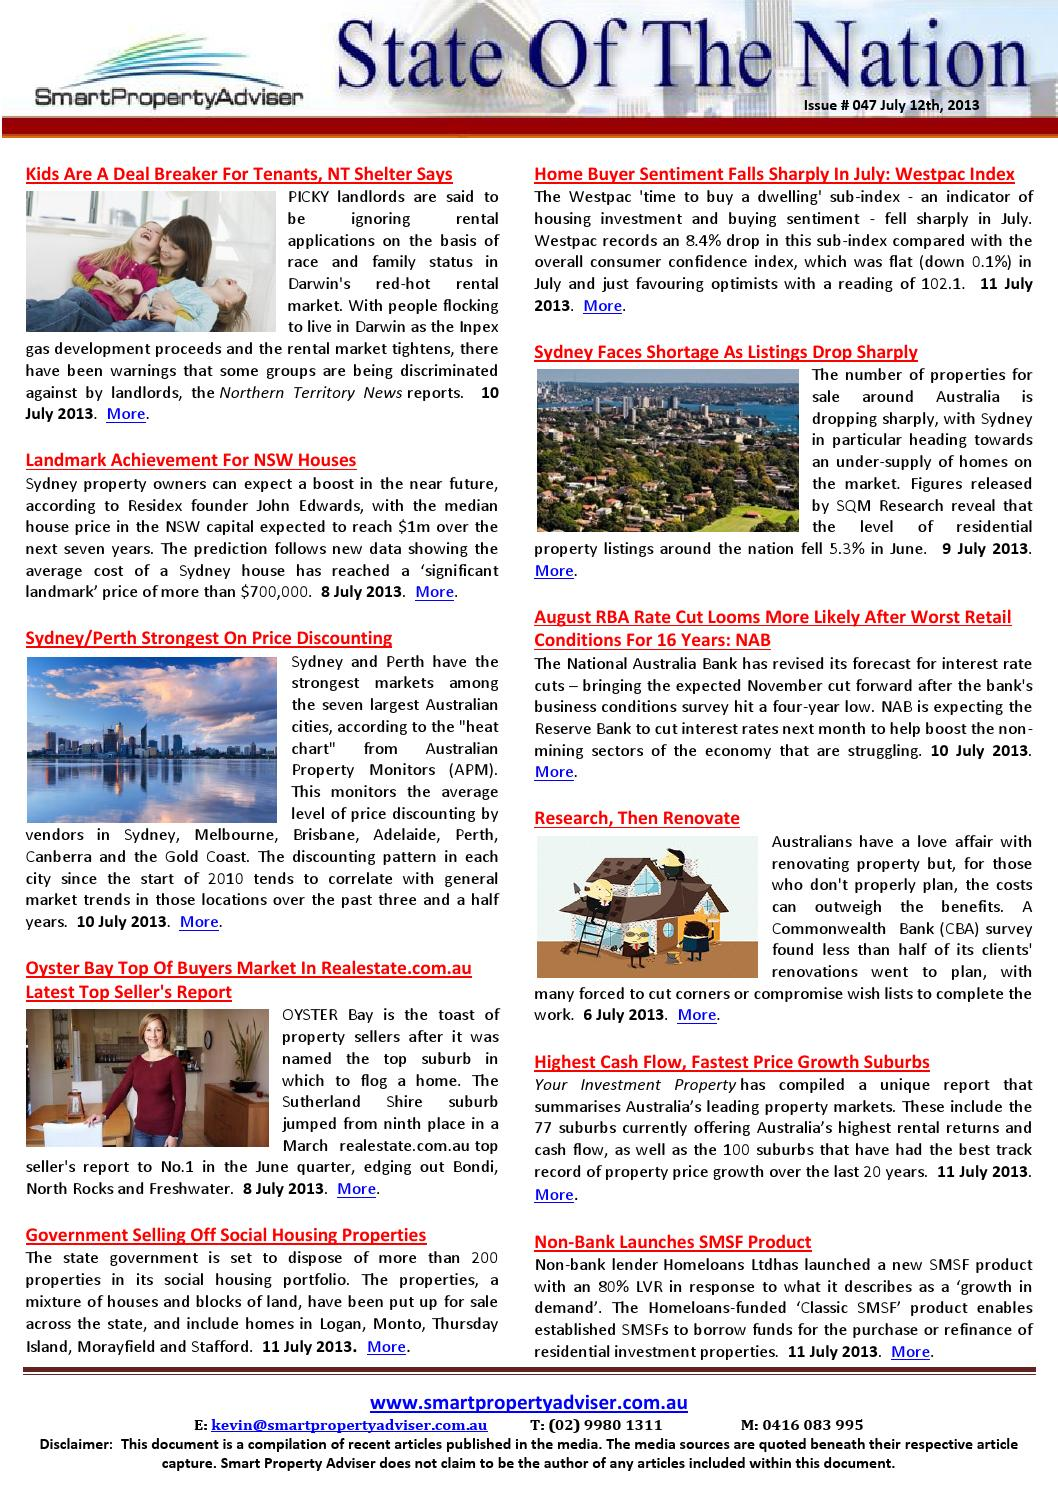 State Of The Nation Issue 47 July 12 2013 By Smart Property